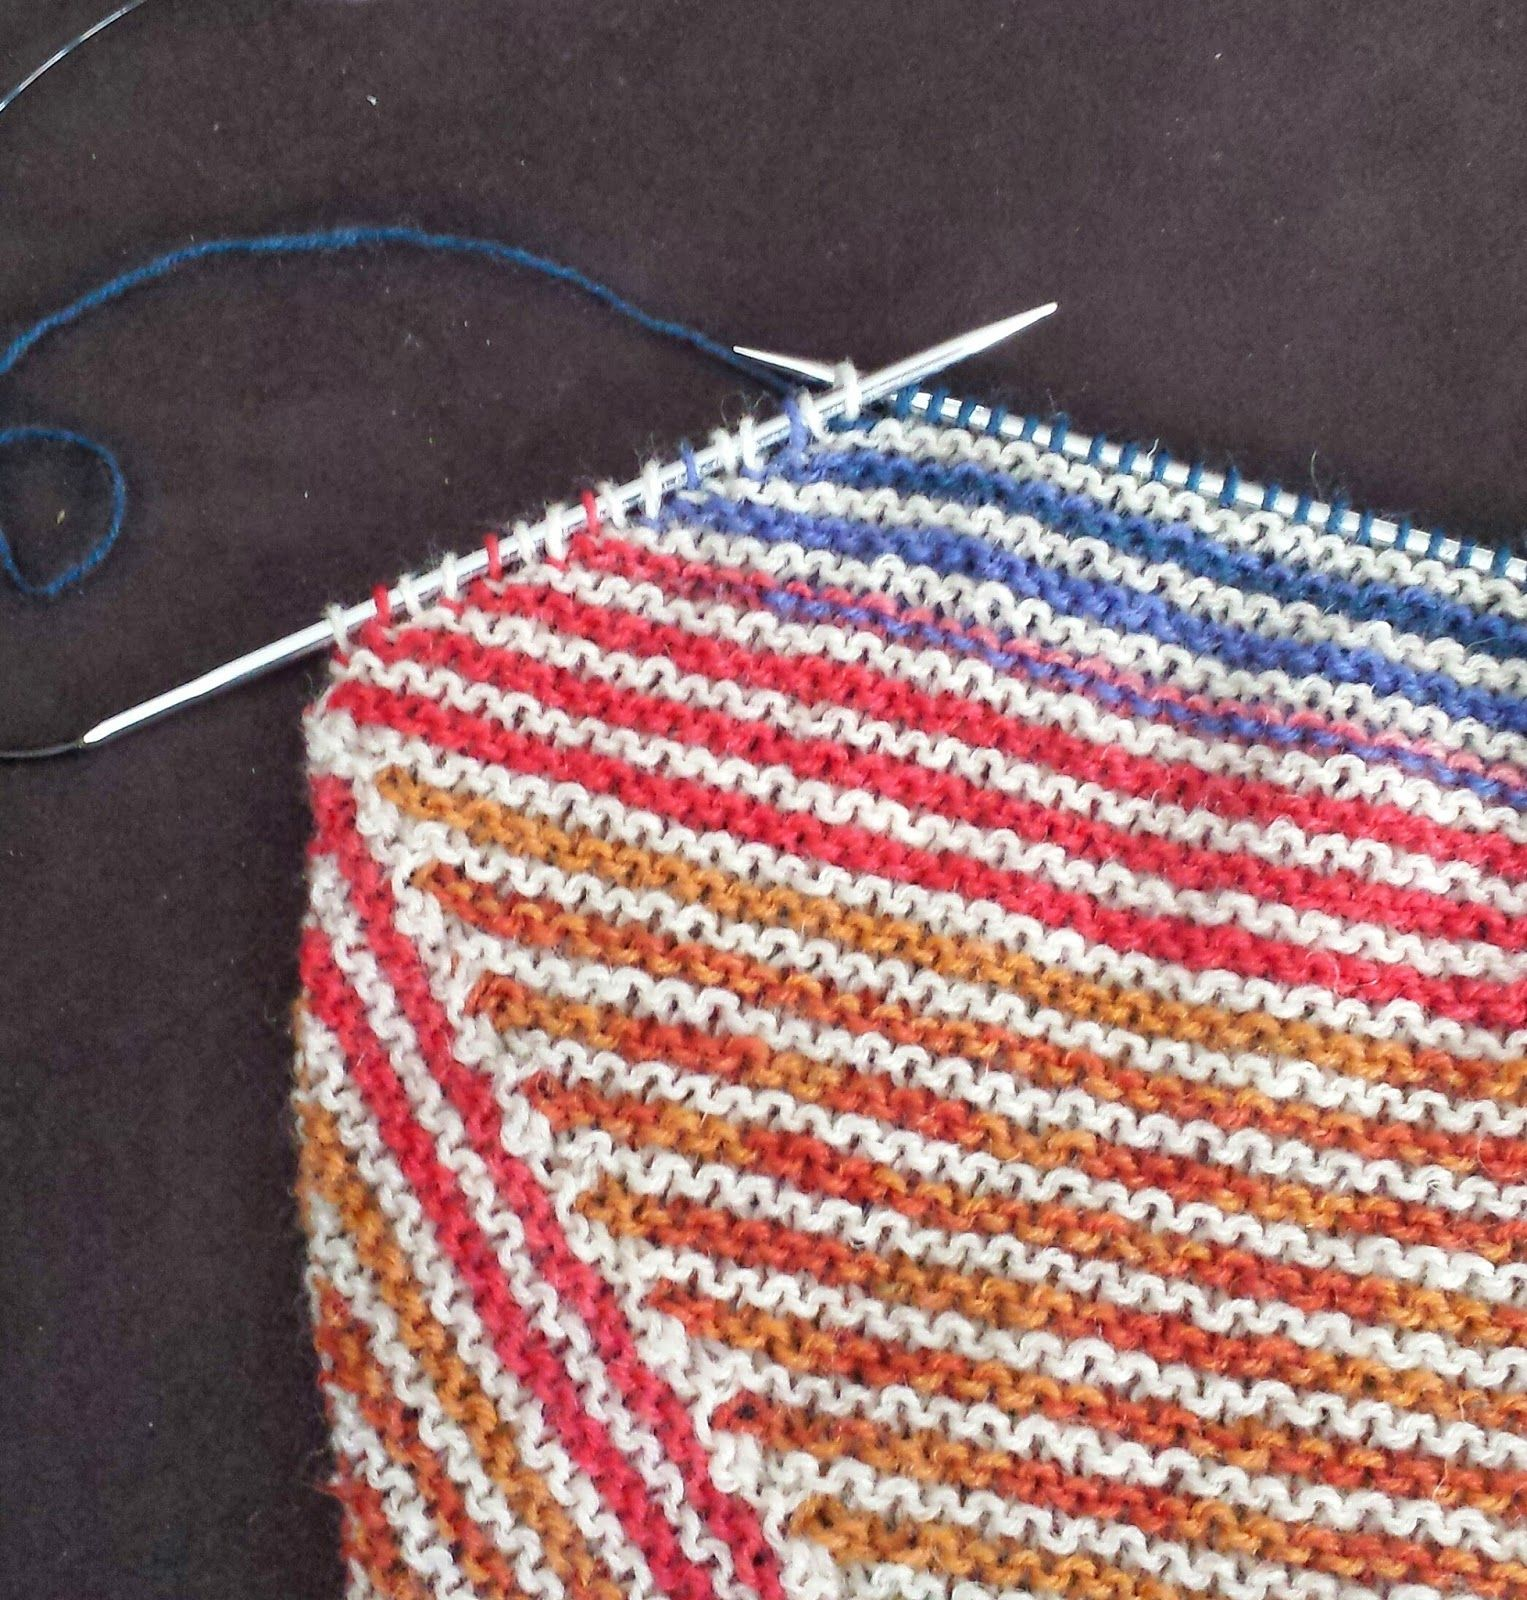 This light stripy spring scarf is knitted from side to side its patterns bankloansurffo Images